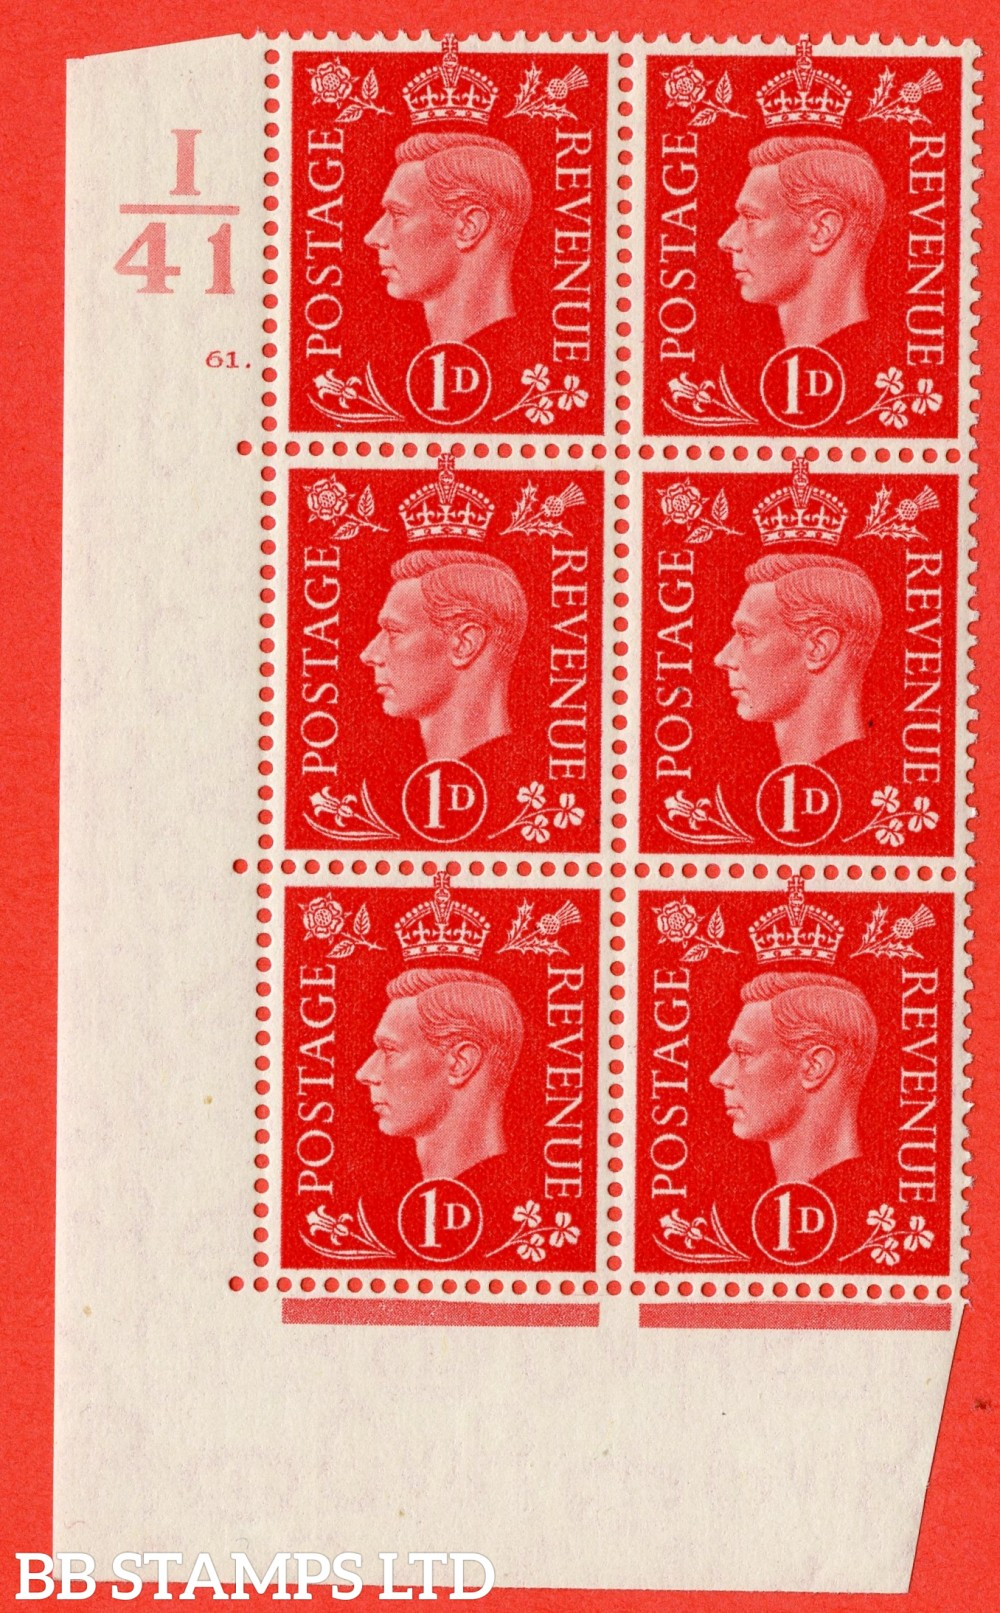 "SG. 463. Q4. 1d Scarlet. A fine lightly mounted mint "" Control I41 cylinder 61 dot "" block of 6 with perf type 5 E/I with marginal rule."